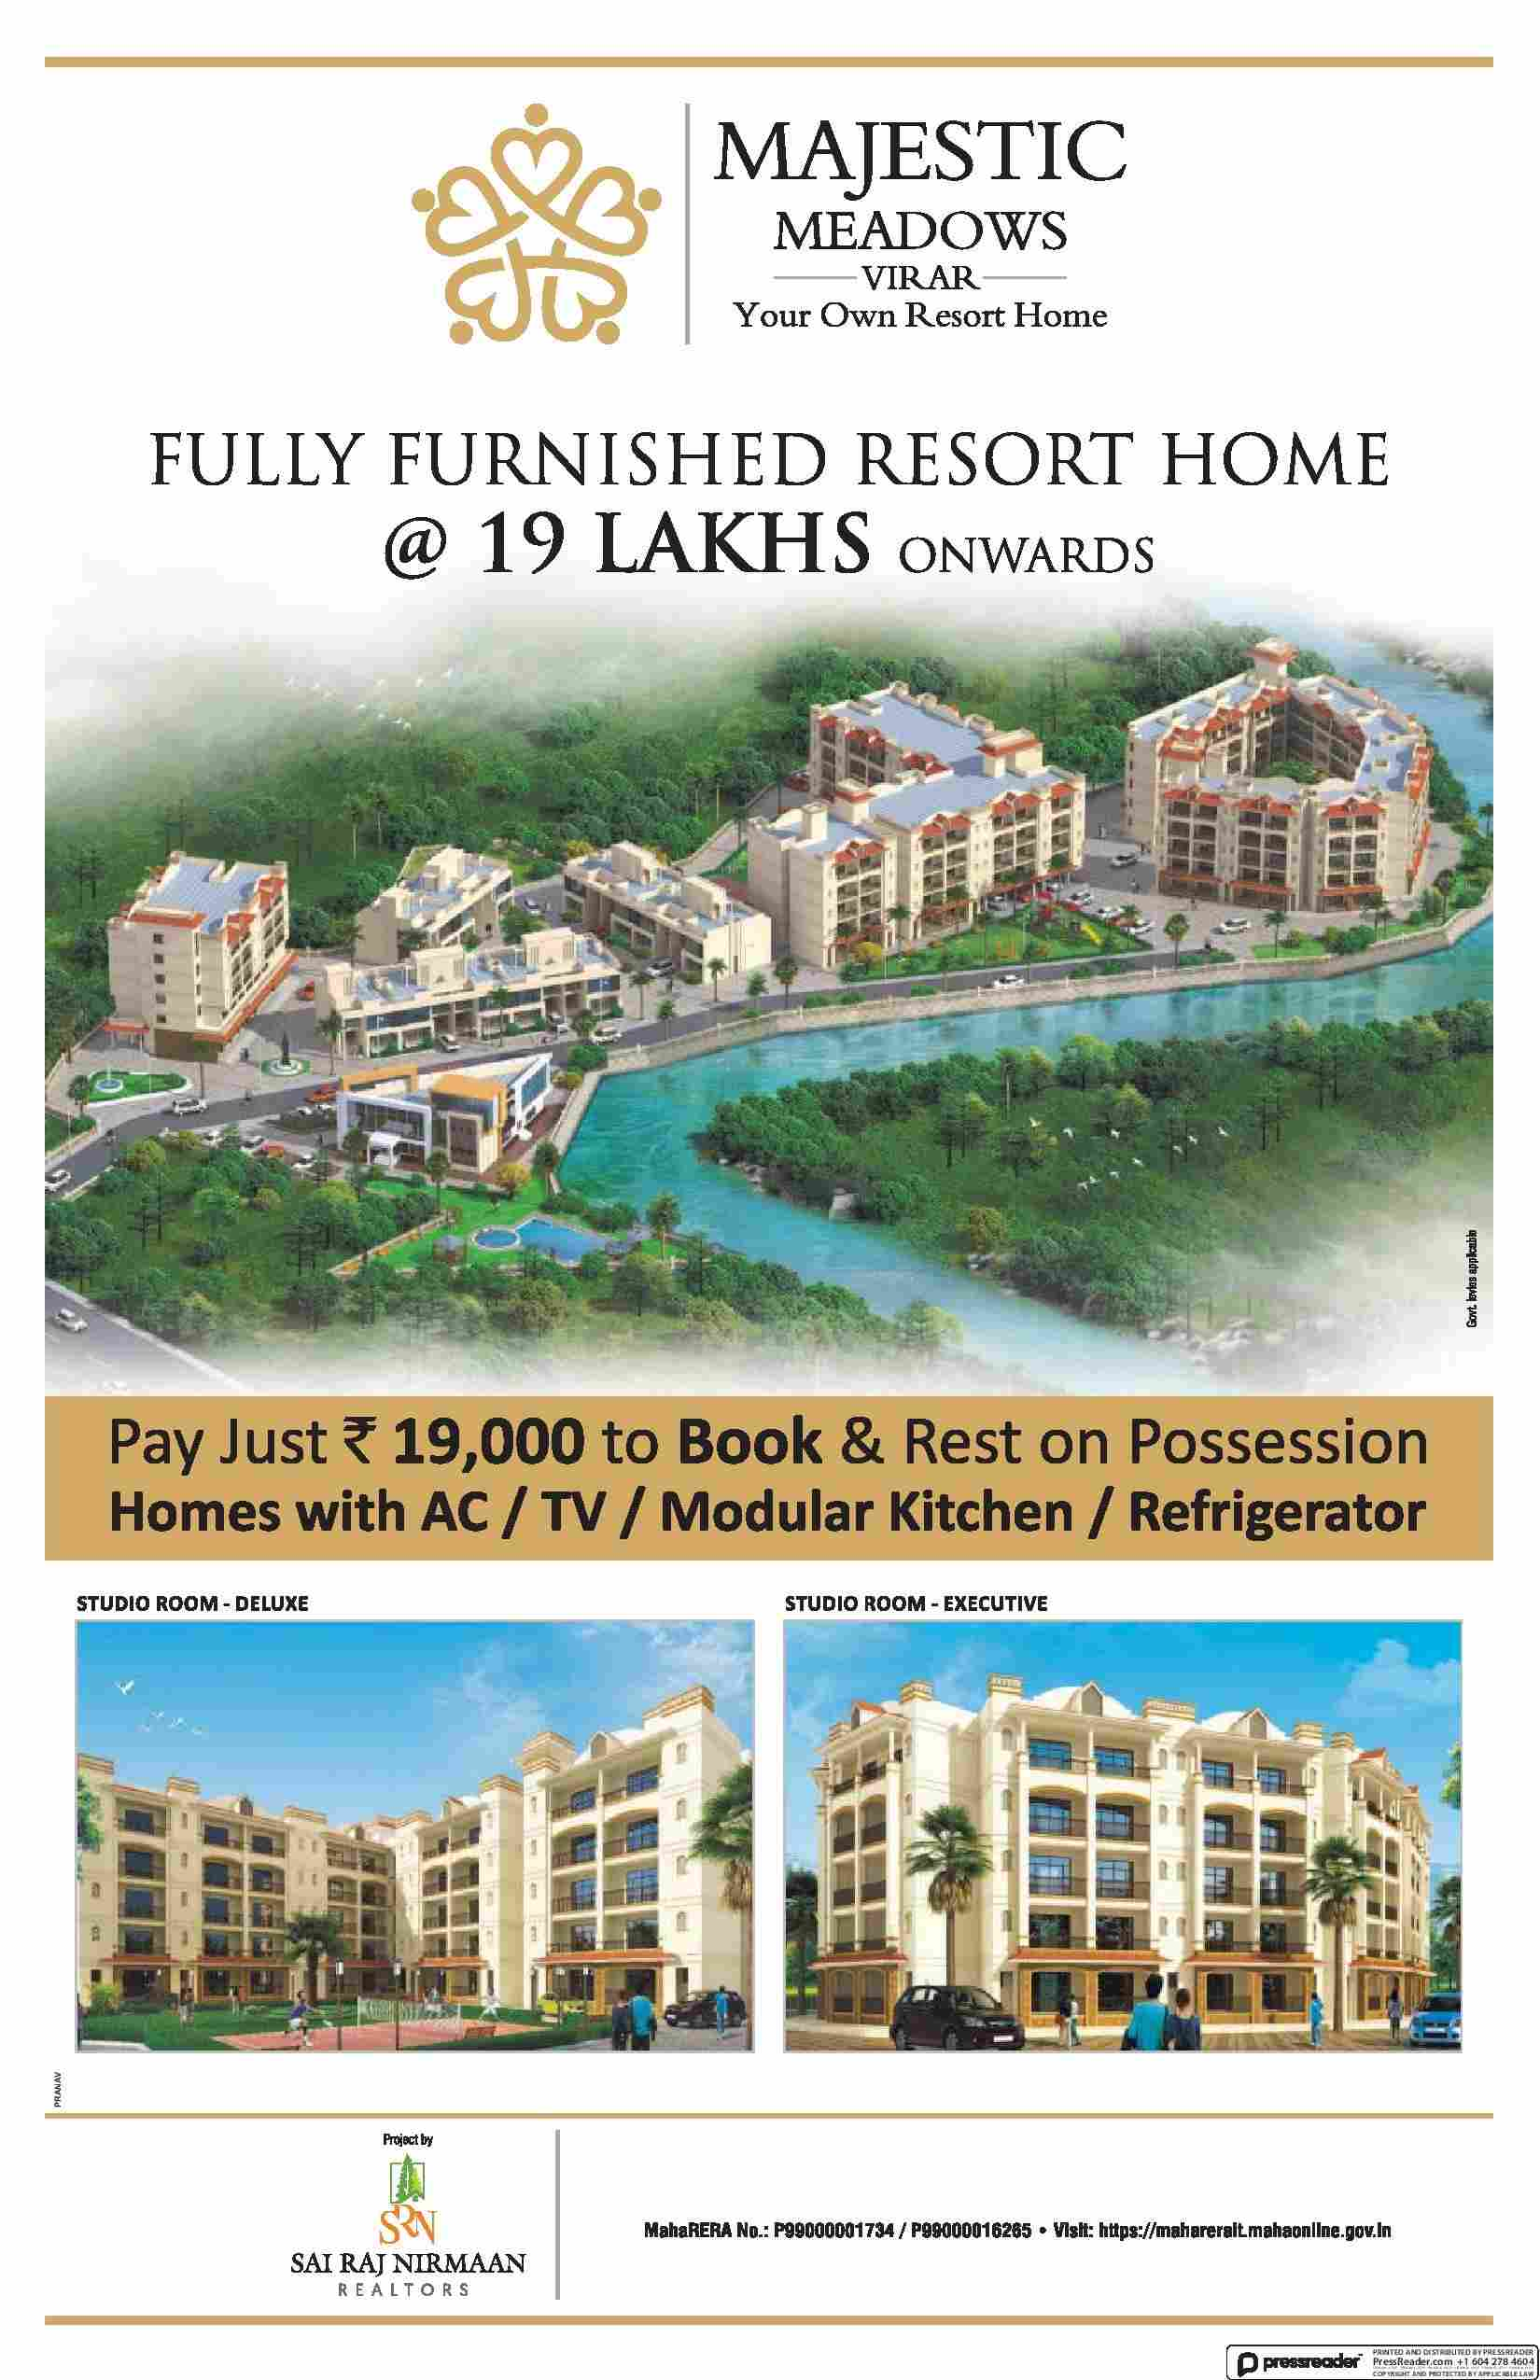 Pay just Rs 19 000 to book and rest on possession at SRN Majestic Meadows in Mumbai